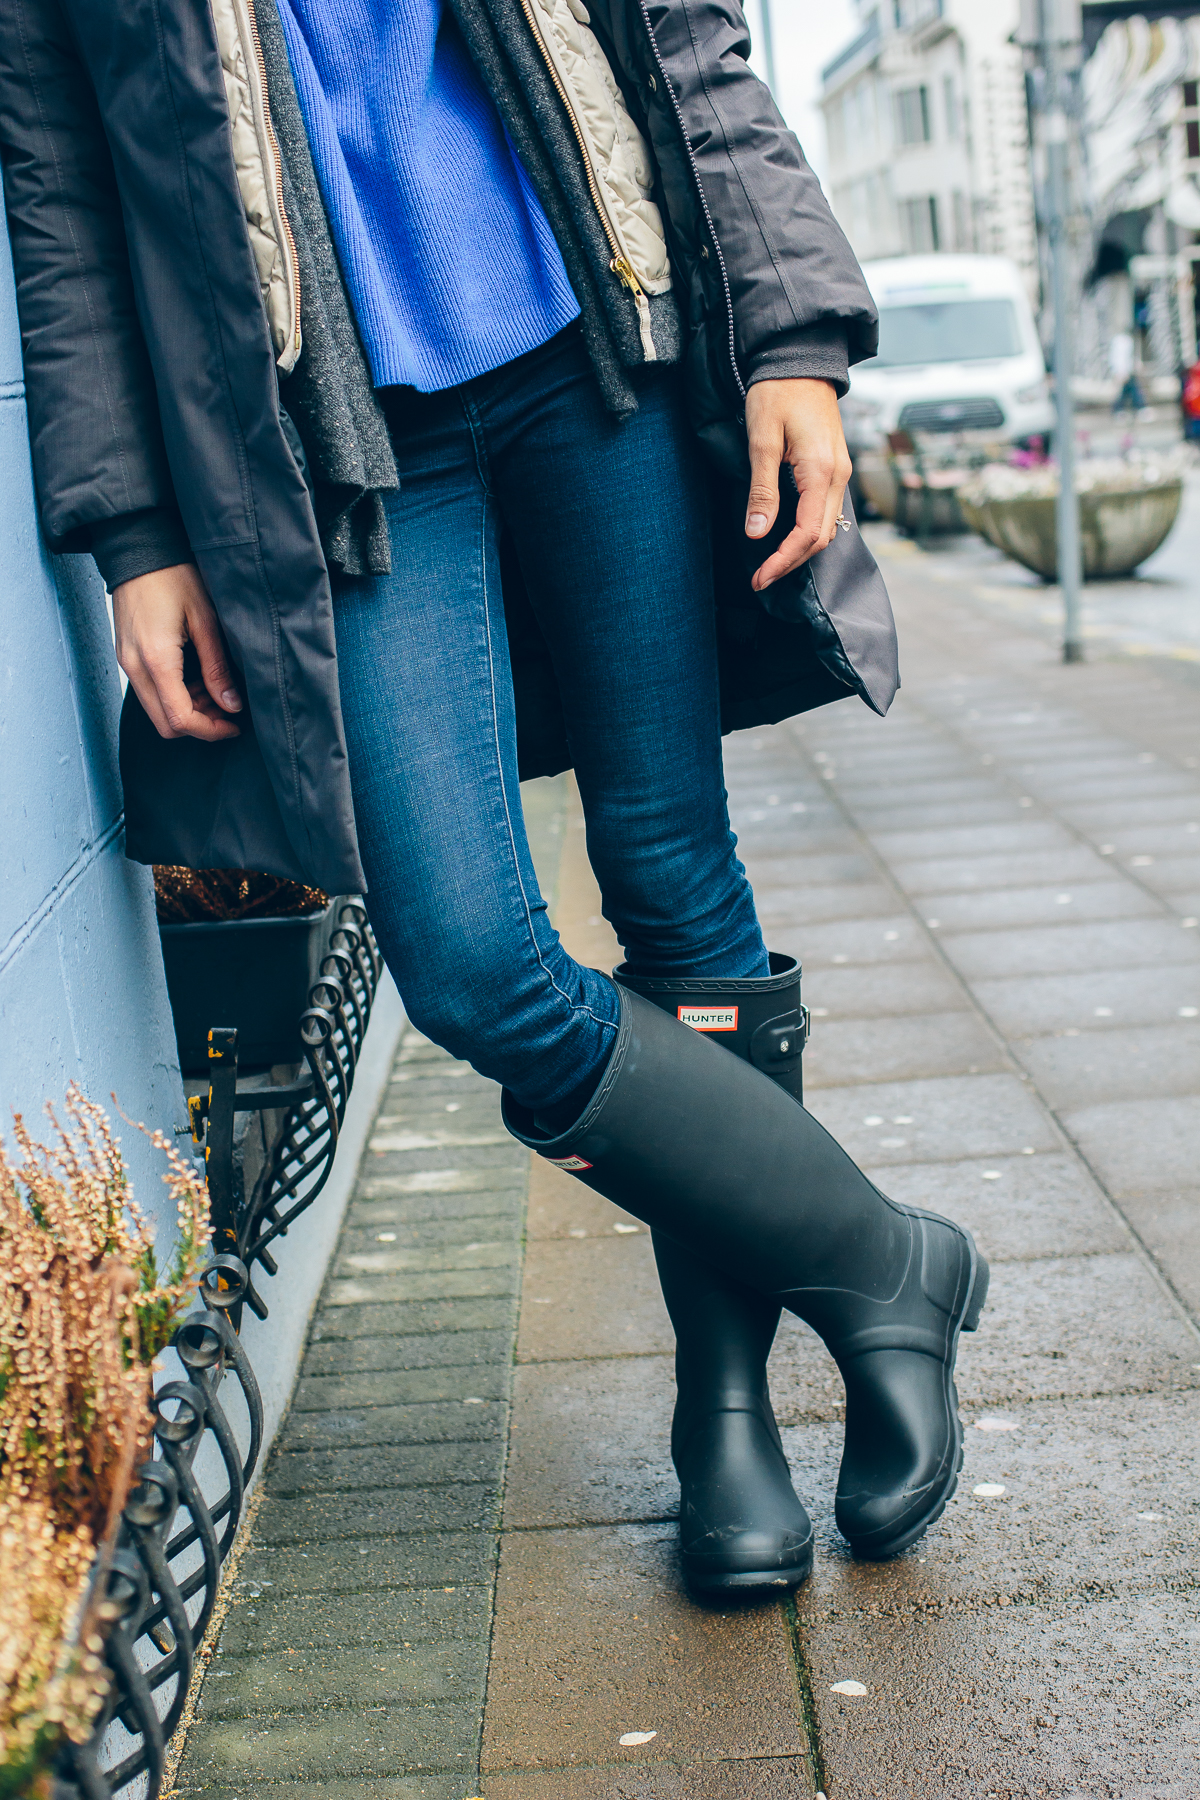 matte black original tall hunter boots, how to wear rain boots, what to wear in iceland, Iceland travel guide —via @TheFoxandShe